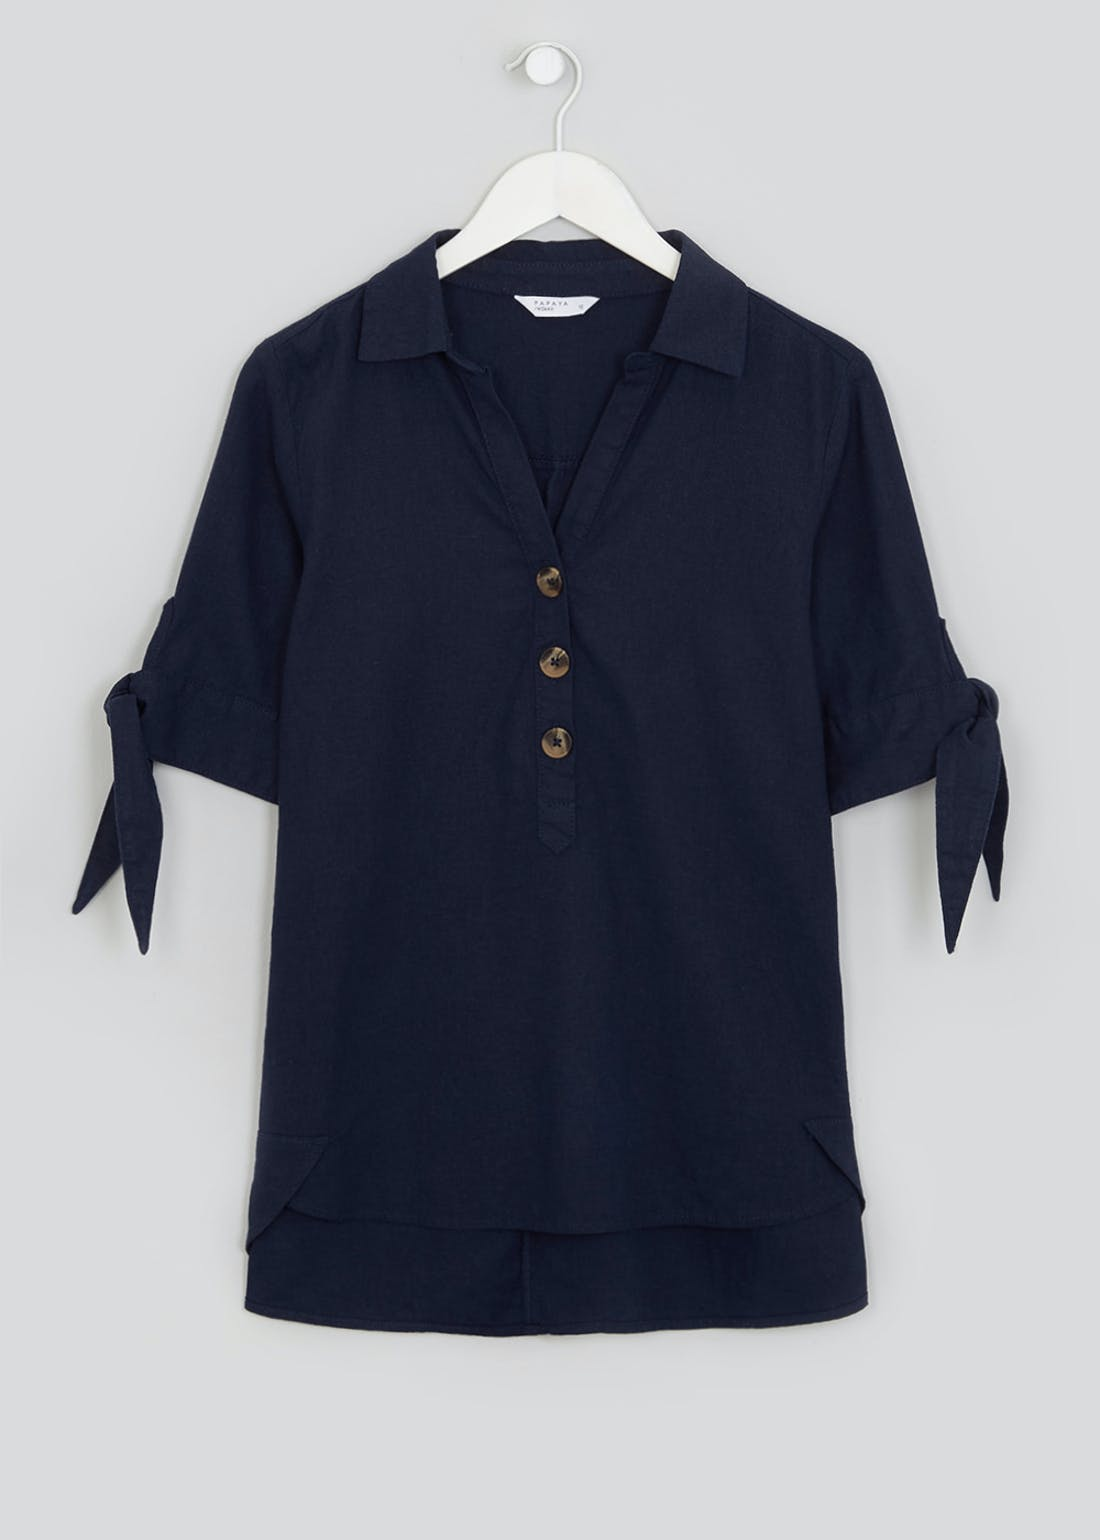 Navy Short Sleeve Linen Tie Cuff Shirt